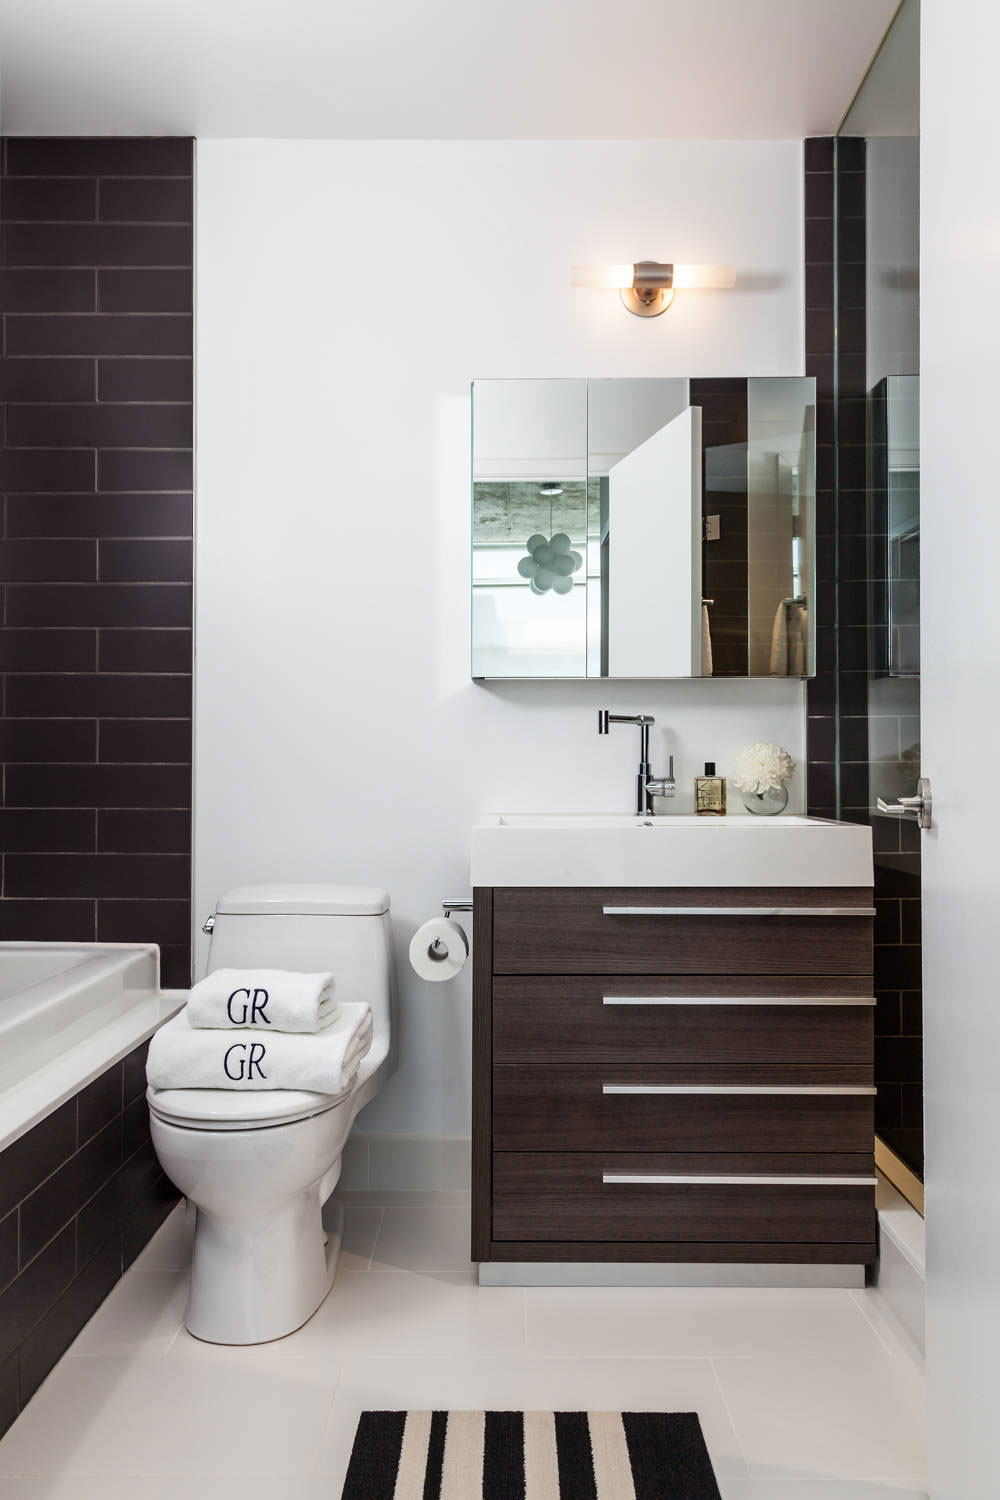 How To Make A Small Bathroom Look Bigger4 How